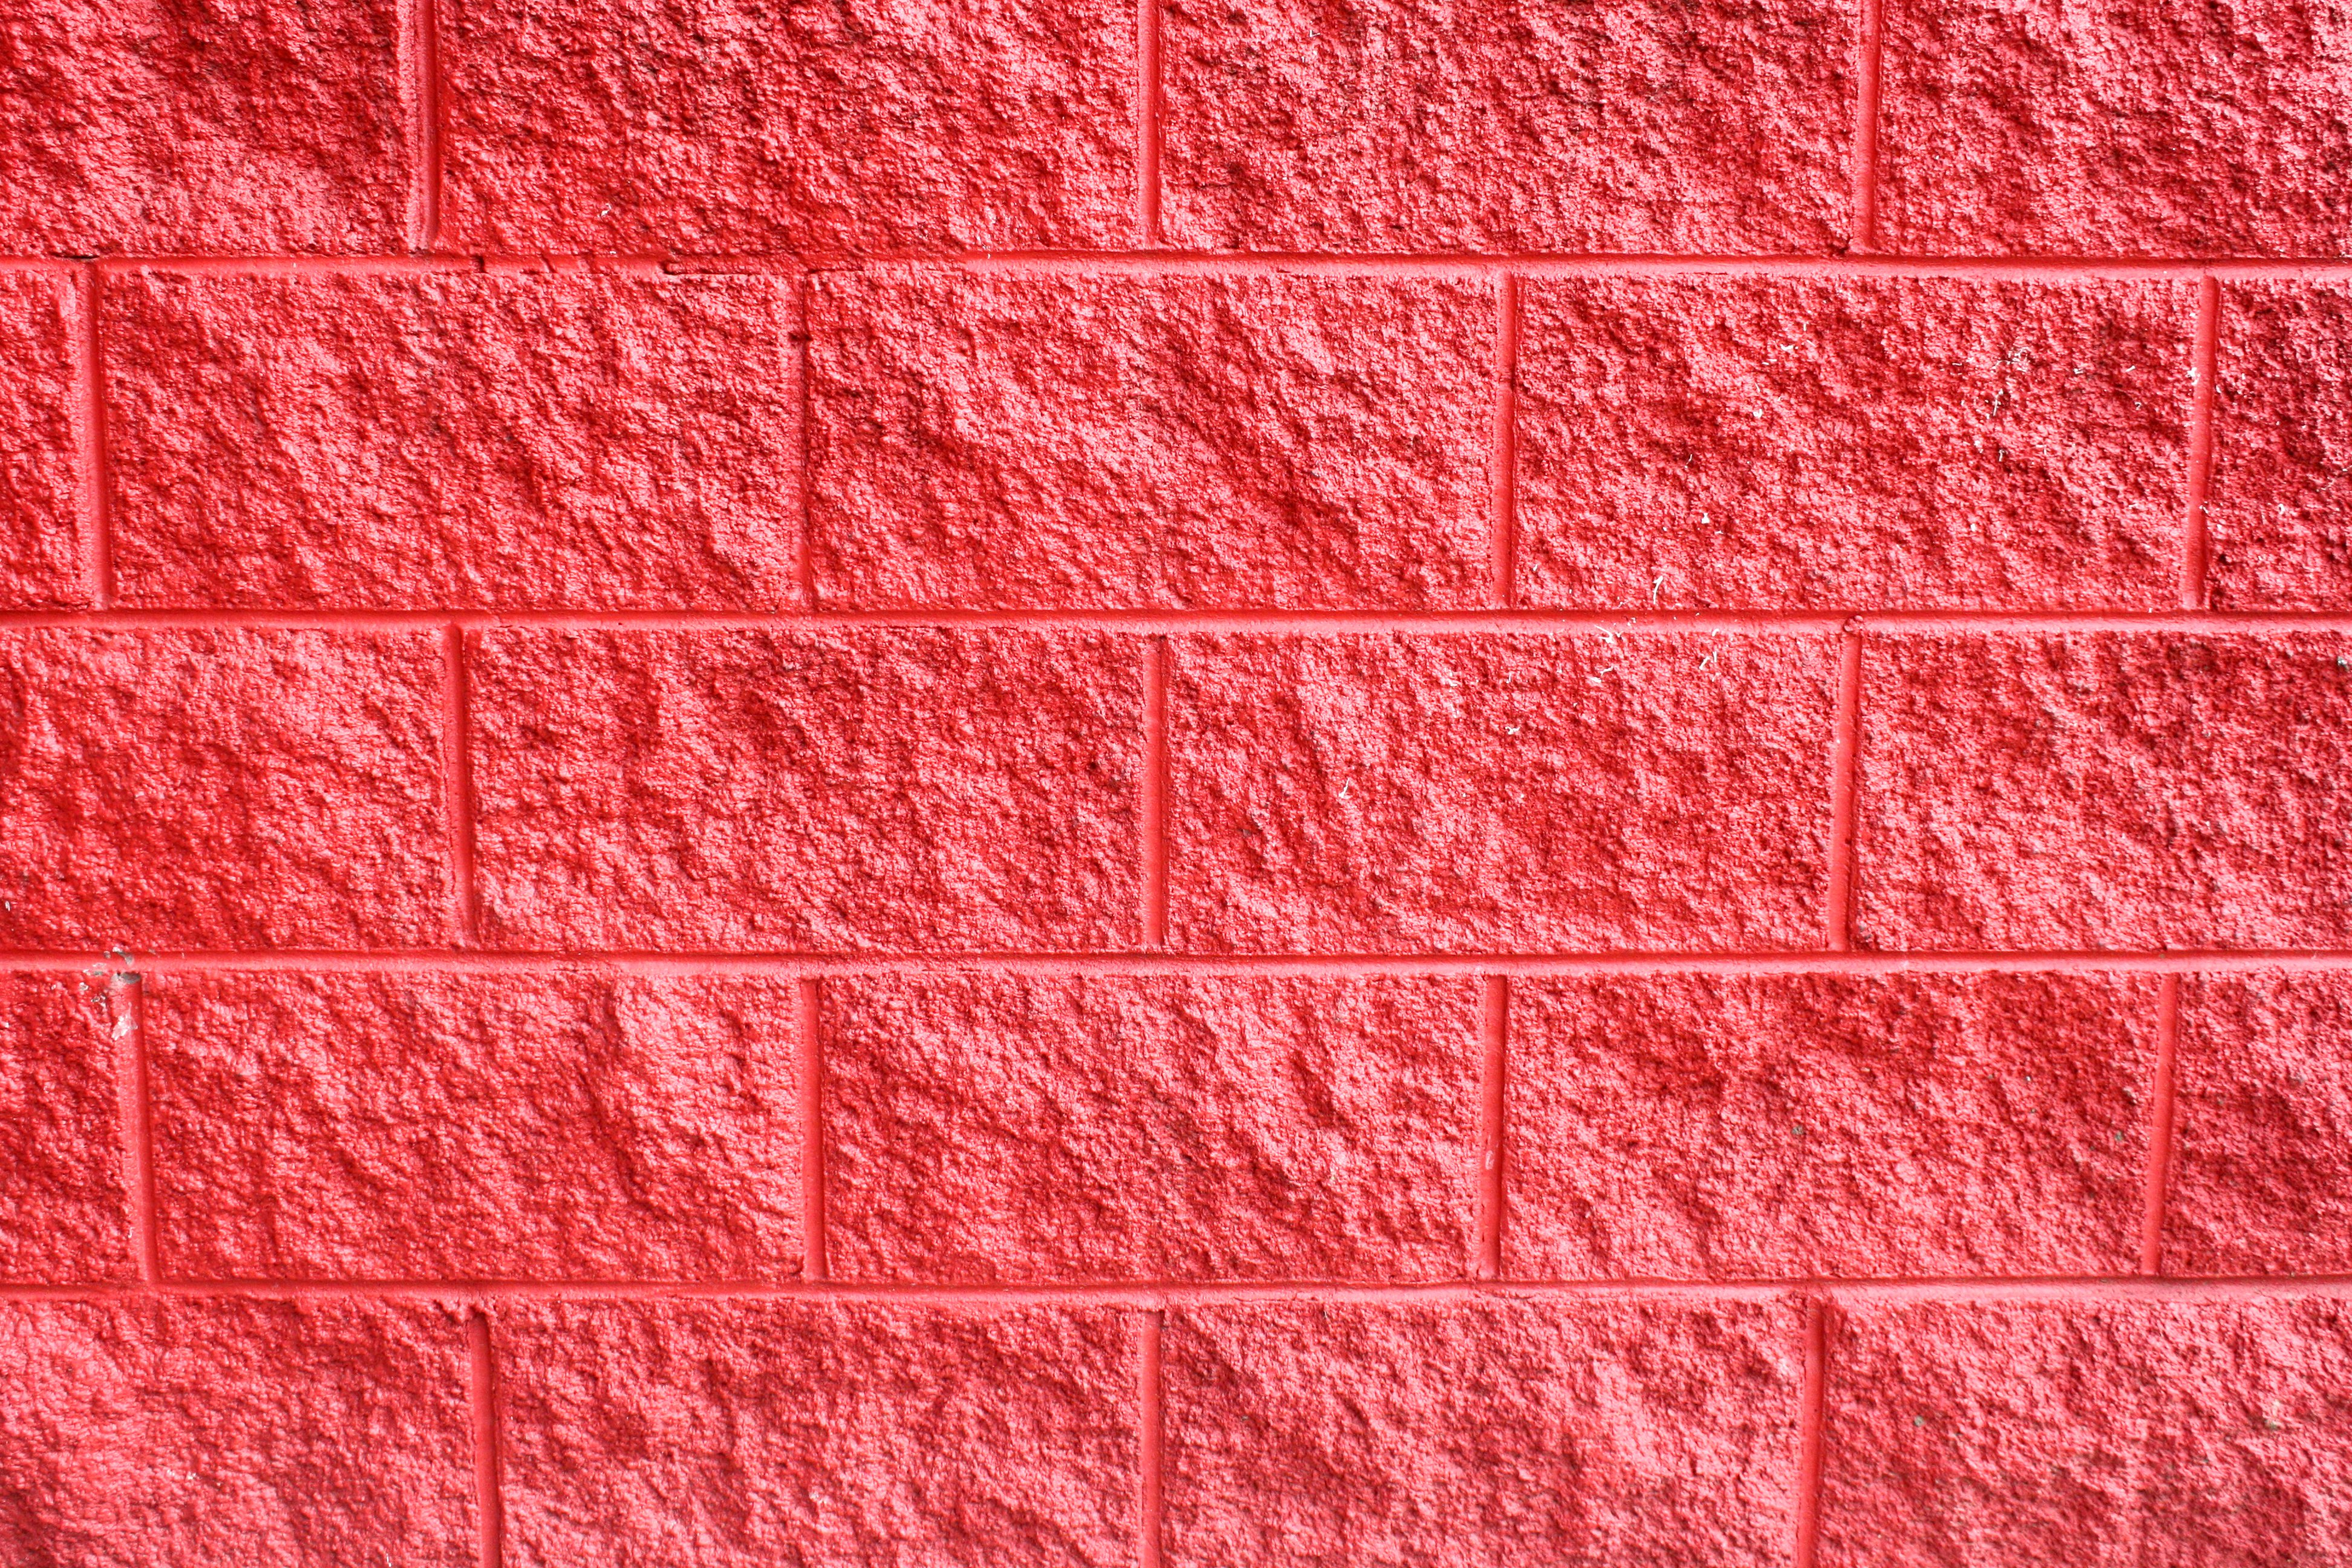 Related Pictures red painted wall texture high resolution photo 3888x2592